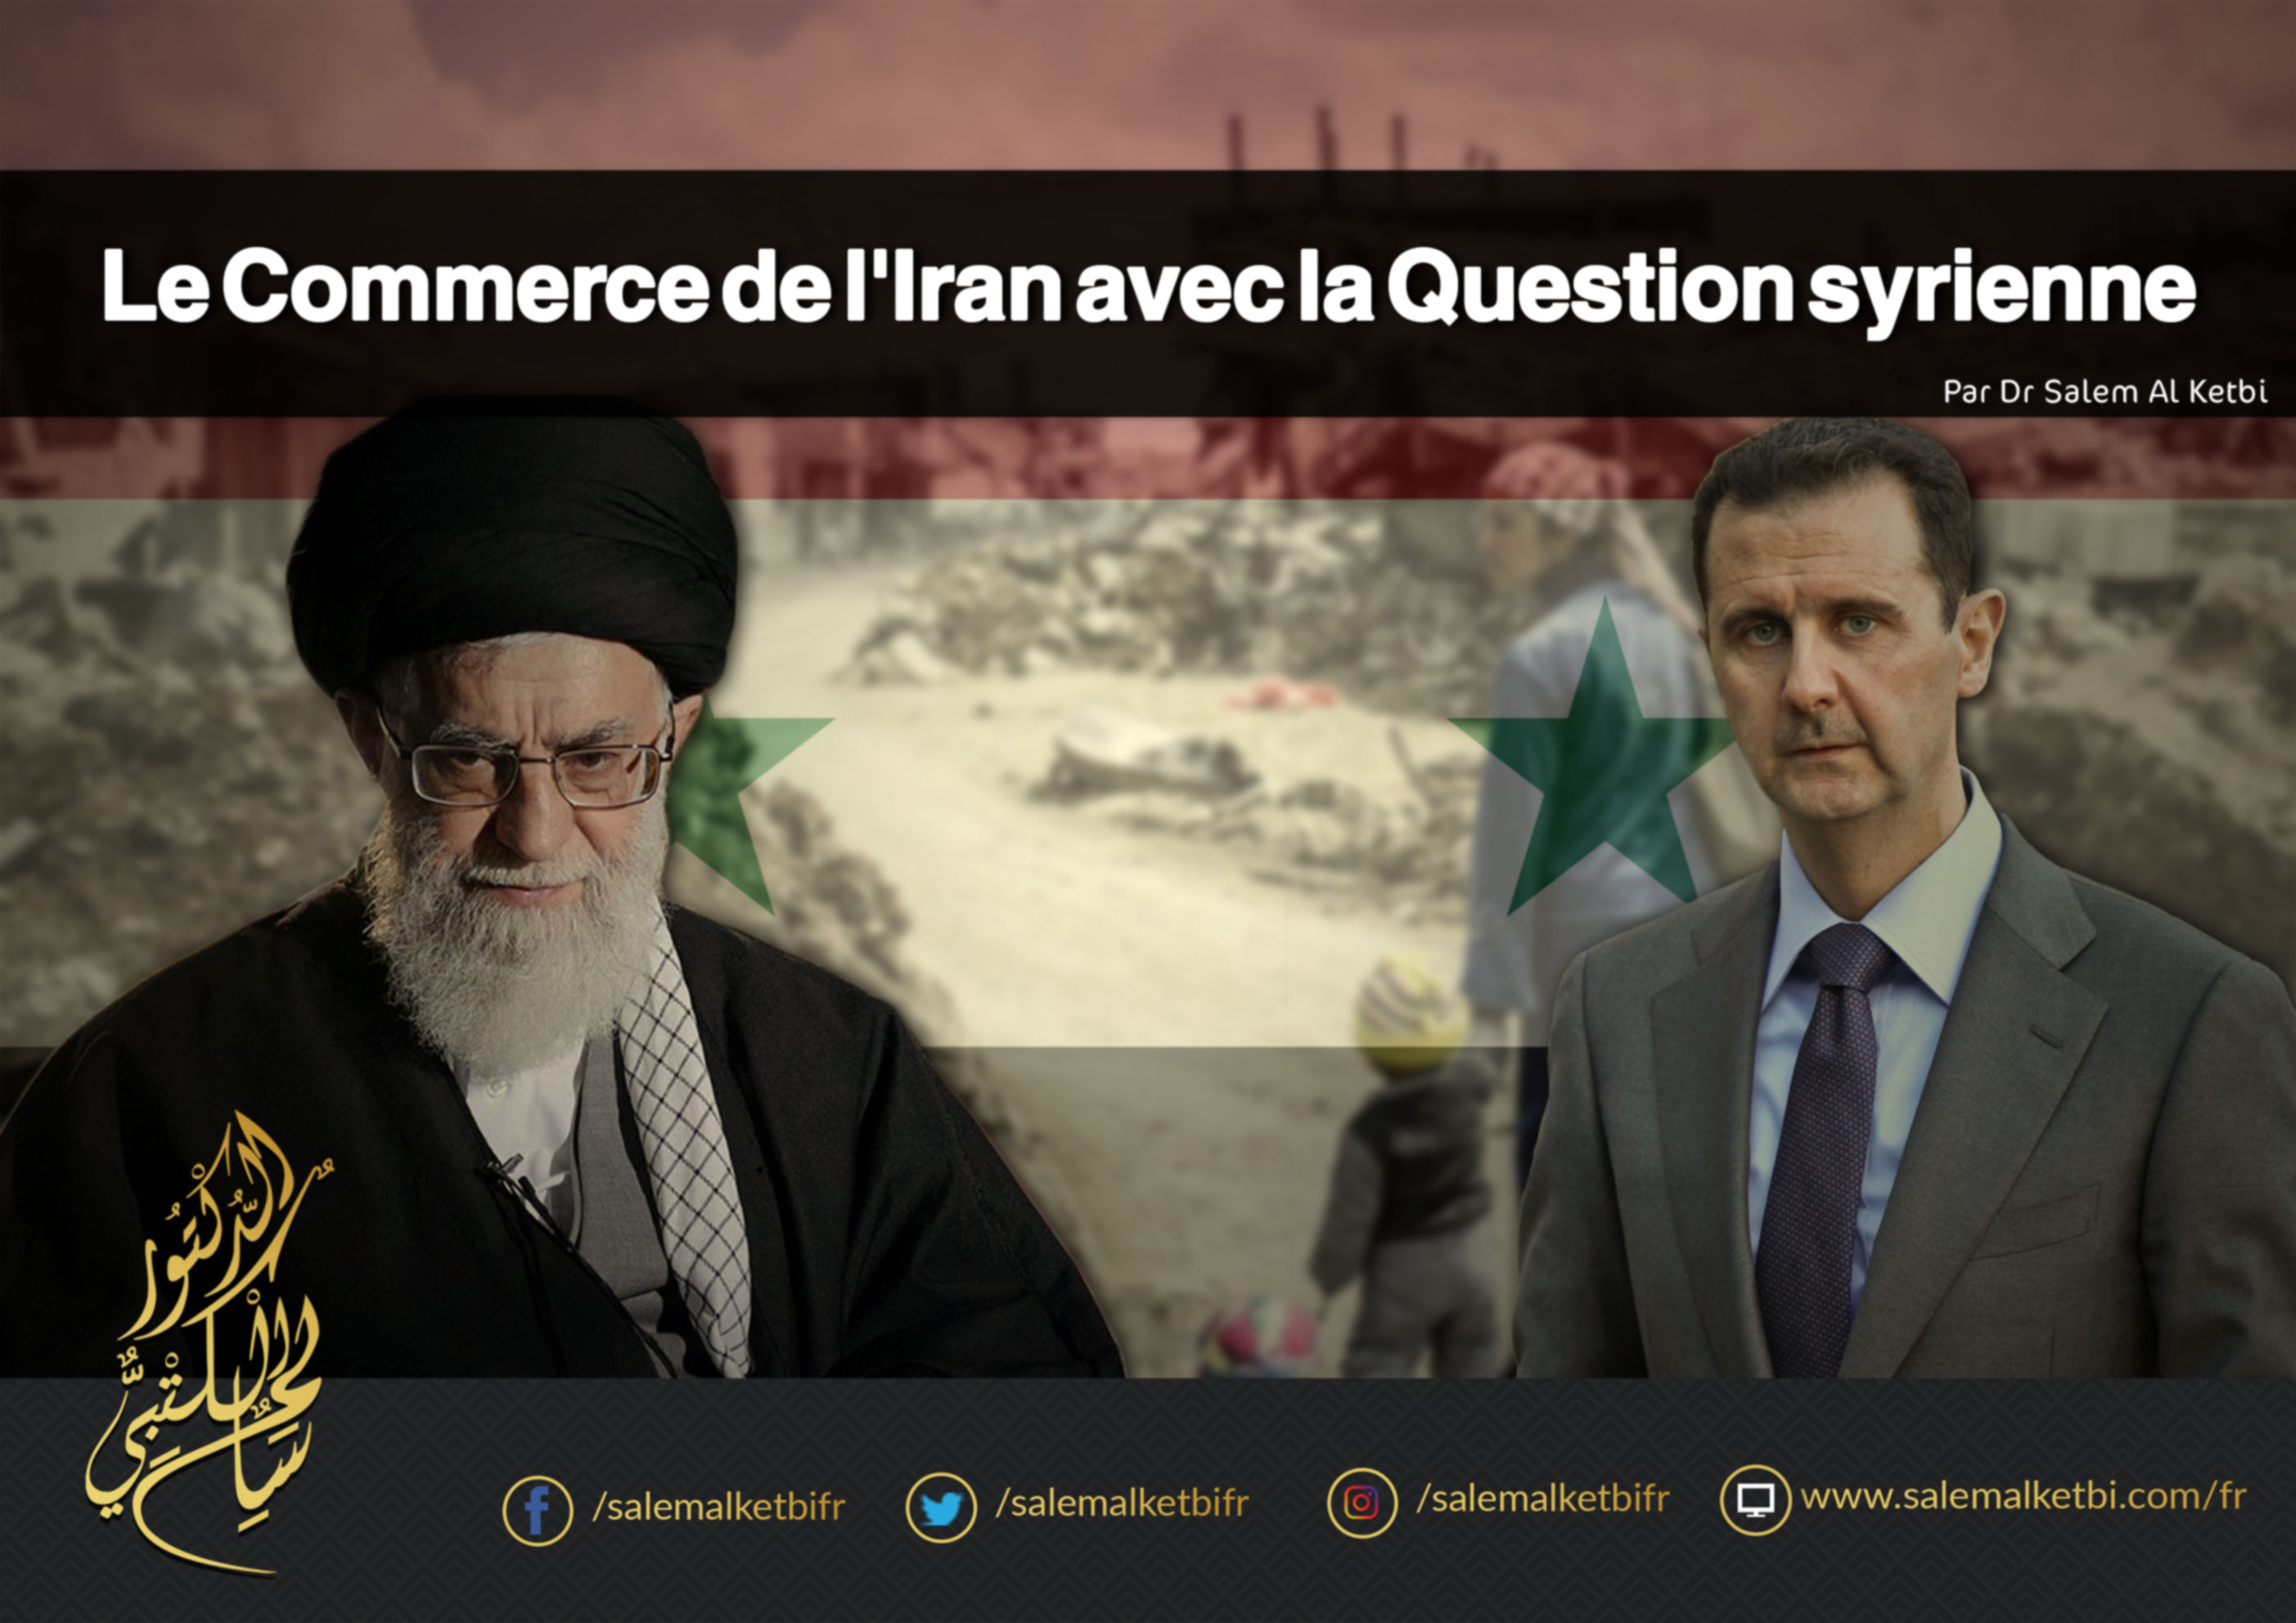 Le Commerce de l'Iran avec la Question syrienne